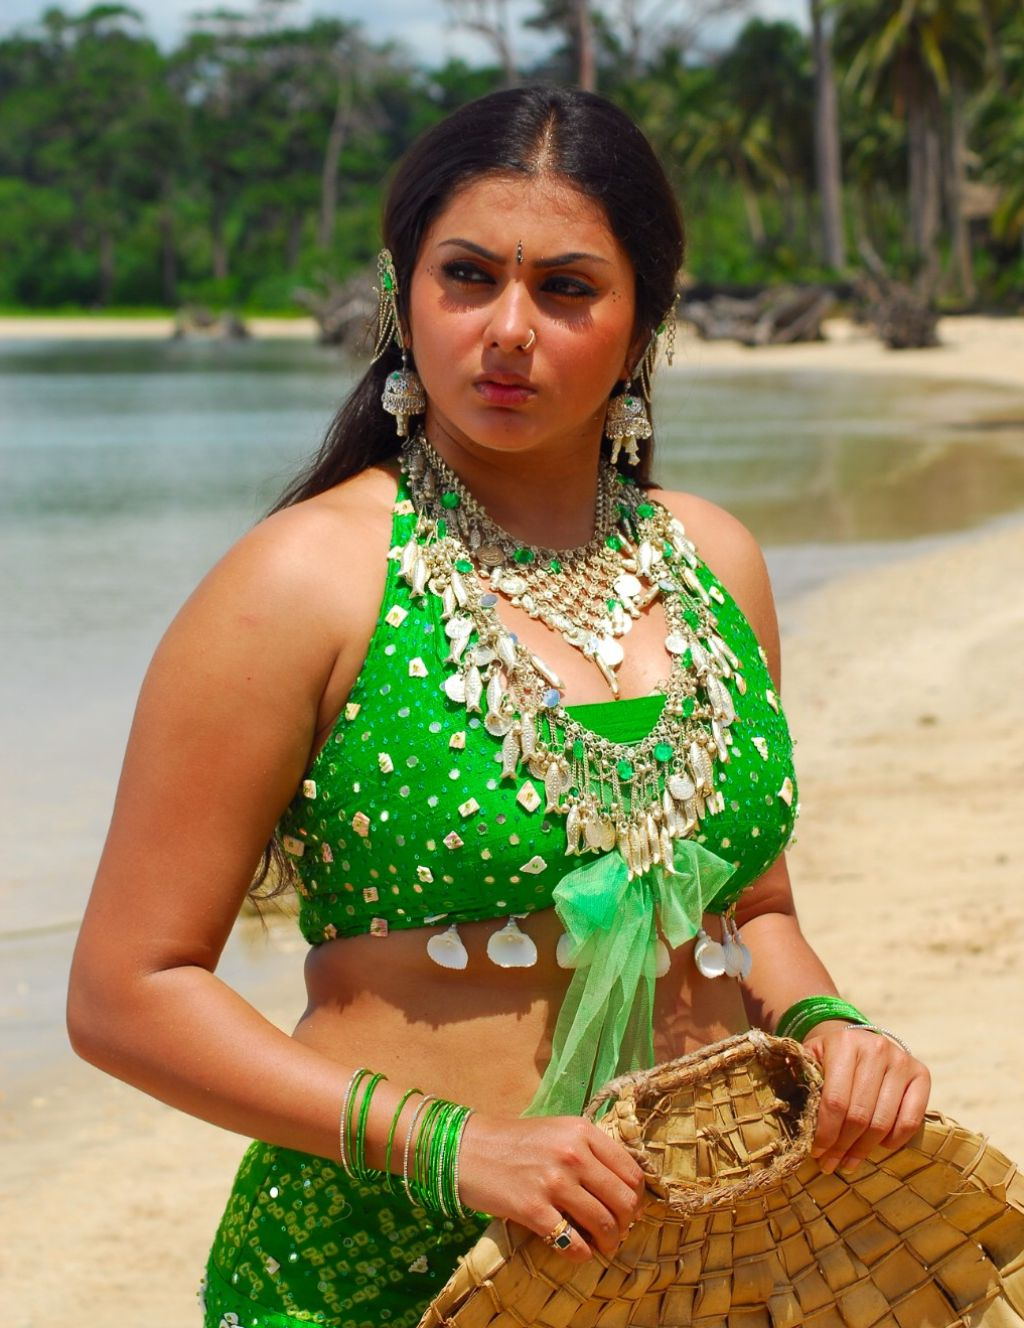 Namitha Blue Film Free Online http://greatcinecorner.blogspot.com/2011/07/telugu-actress-namitha-wallpapers.html